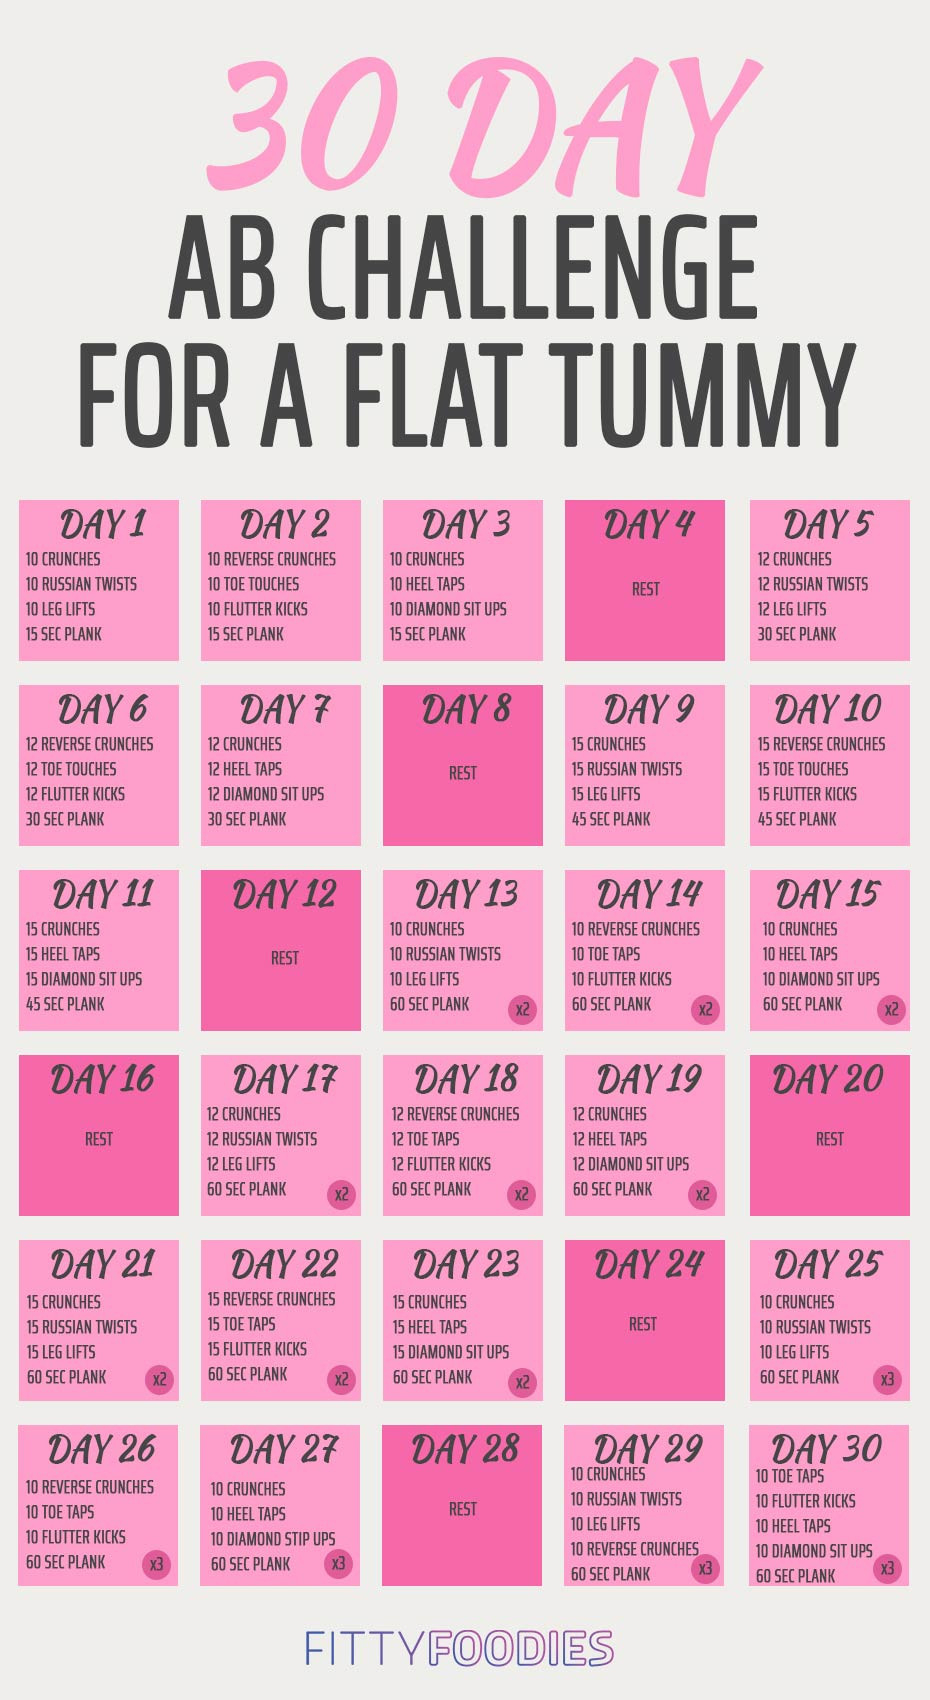 The 30-Day Ab Challenge For A Flat Tummy - Fittyfoodies  30 Day Exercise Challenge Printable